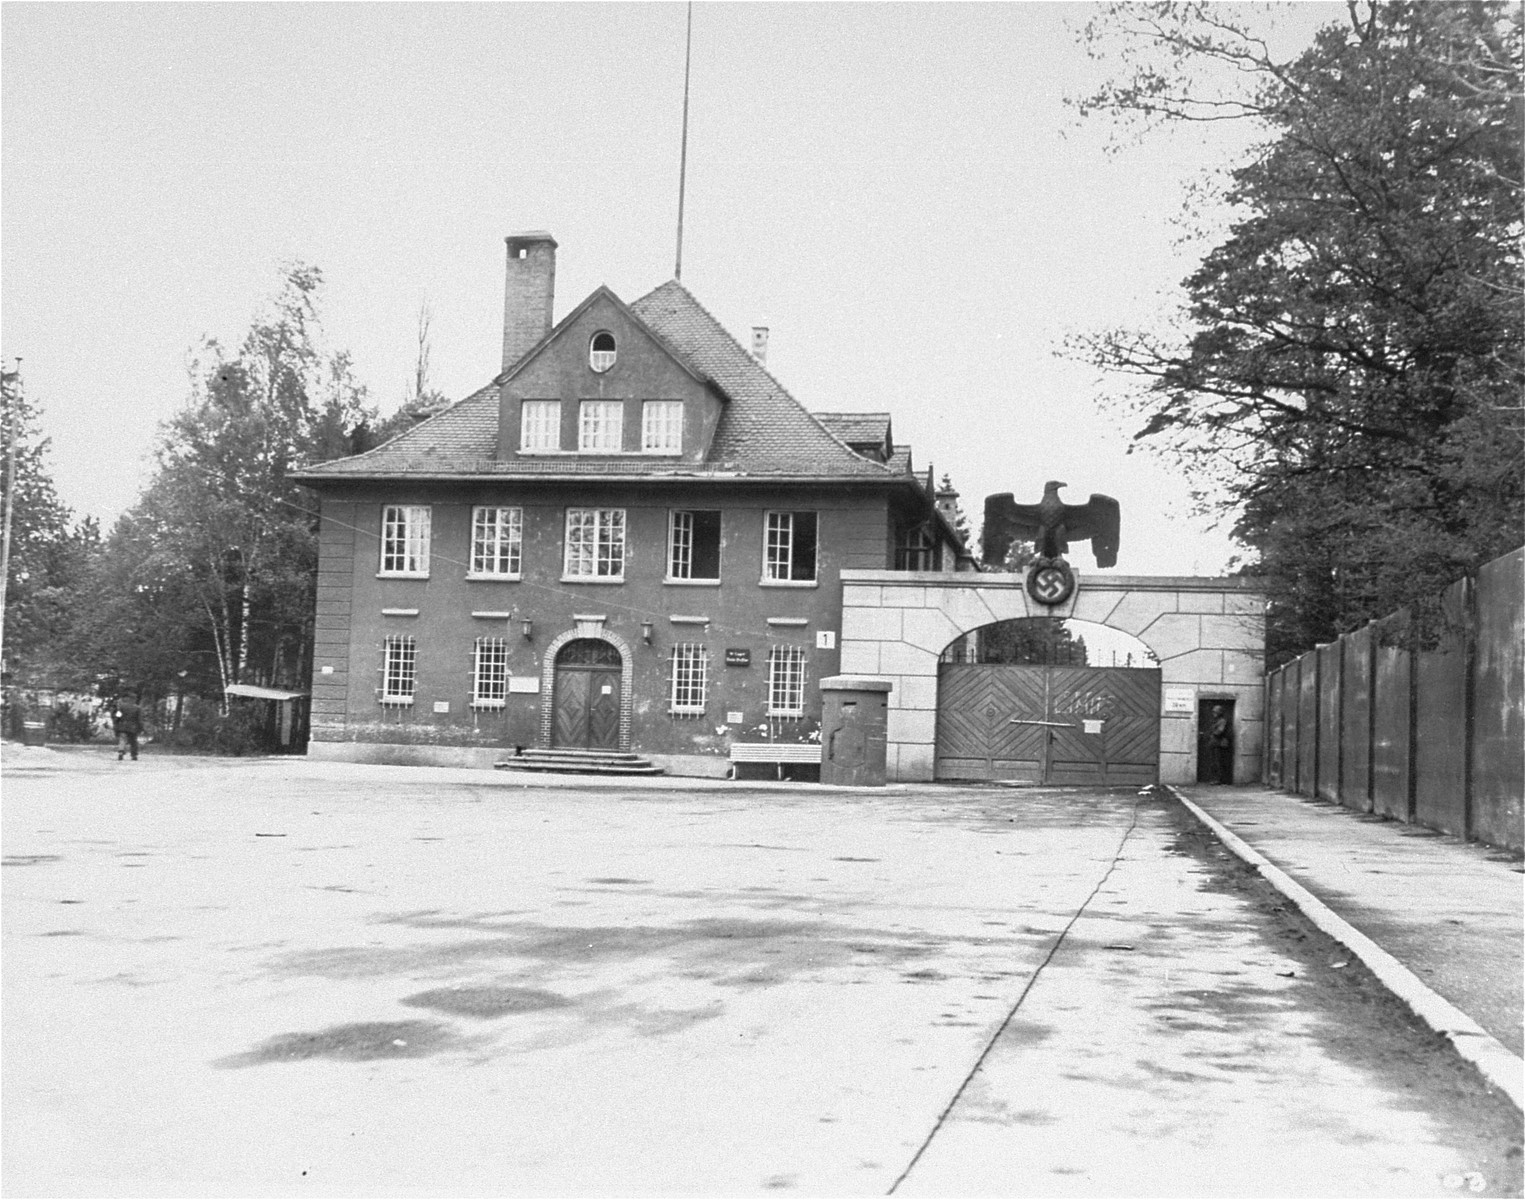 The building that housed police officials at Dachau, after liberation.